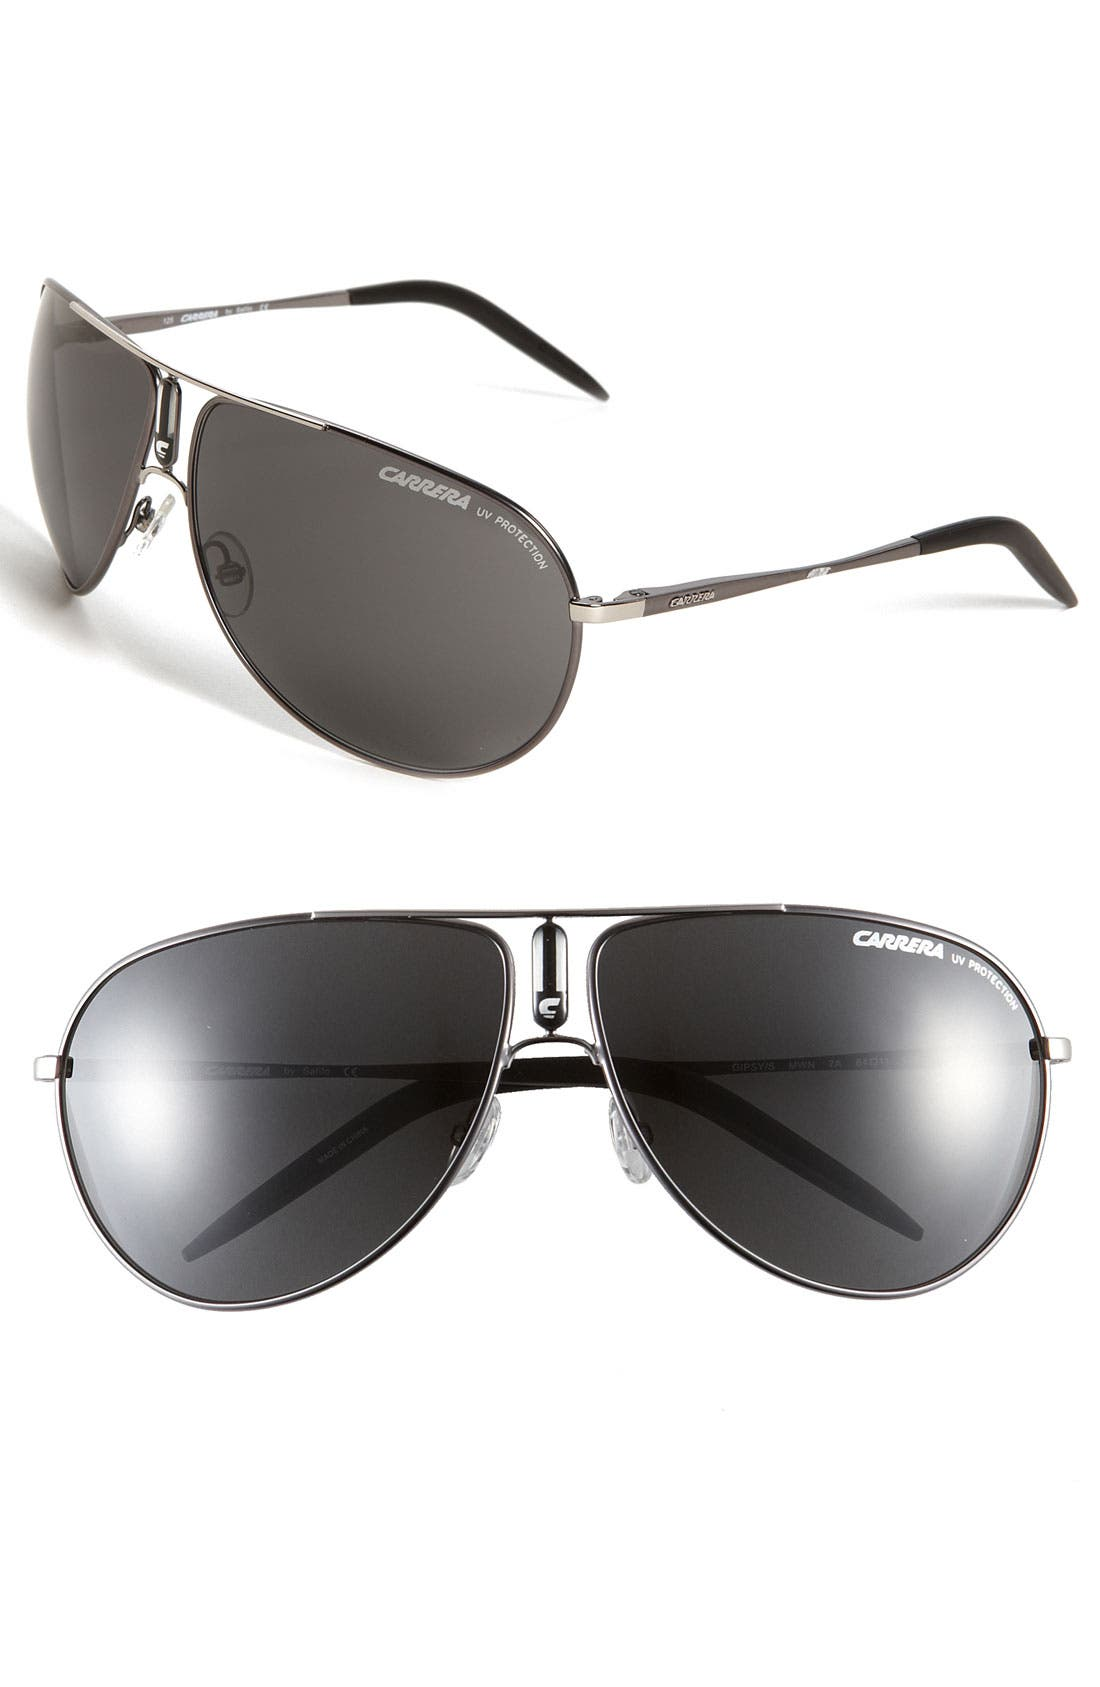 Main Image - Carrera Eyewear 'Gipsy' 64mm Aviator Sunglasses